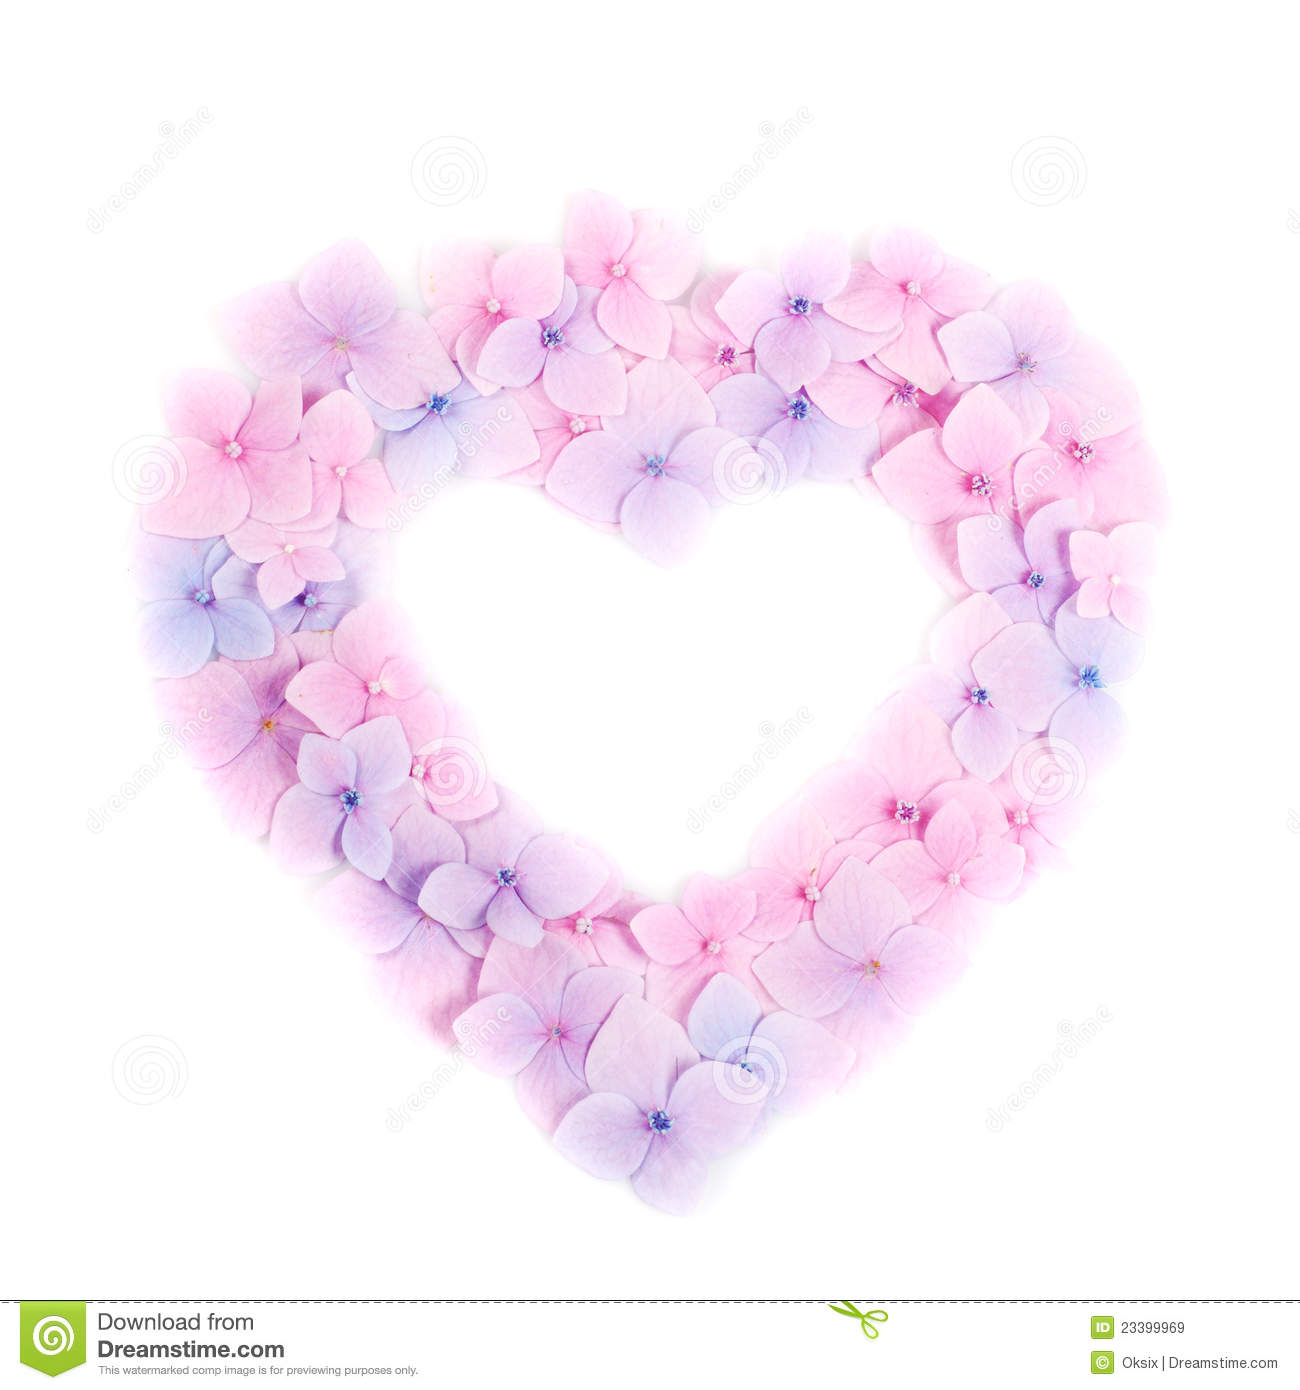 pink flower heart royalty free stock images  image, Beautiful flower